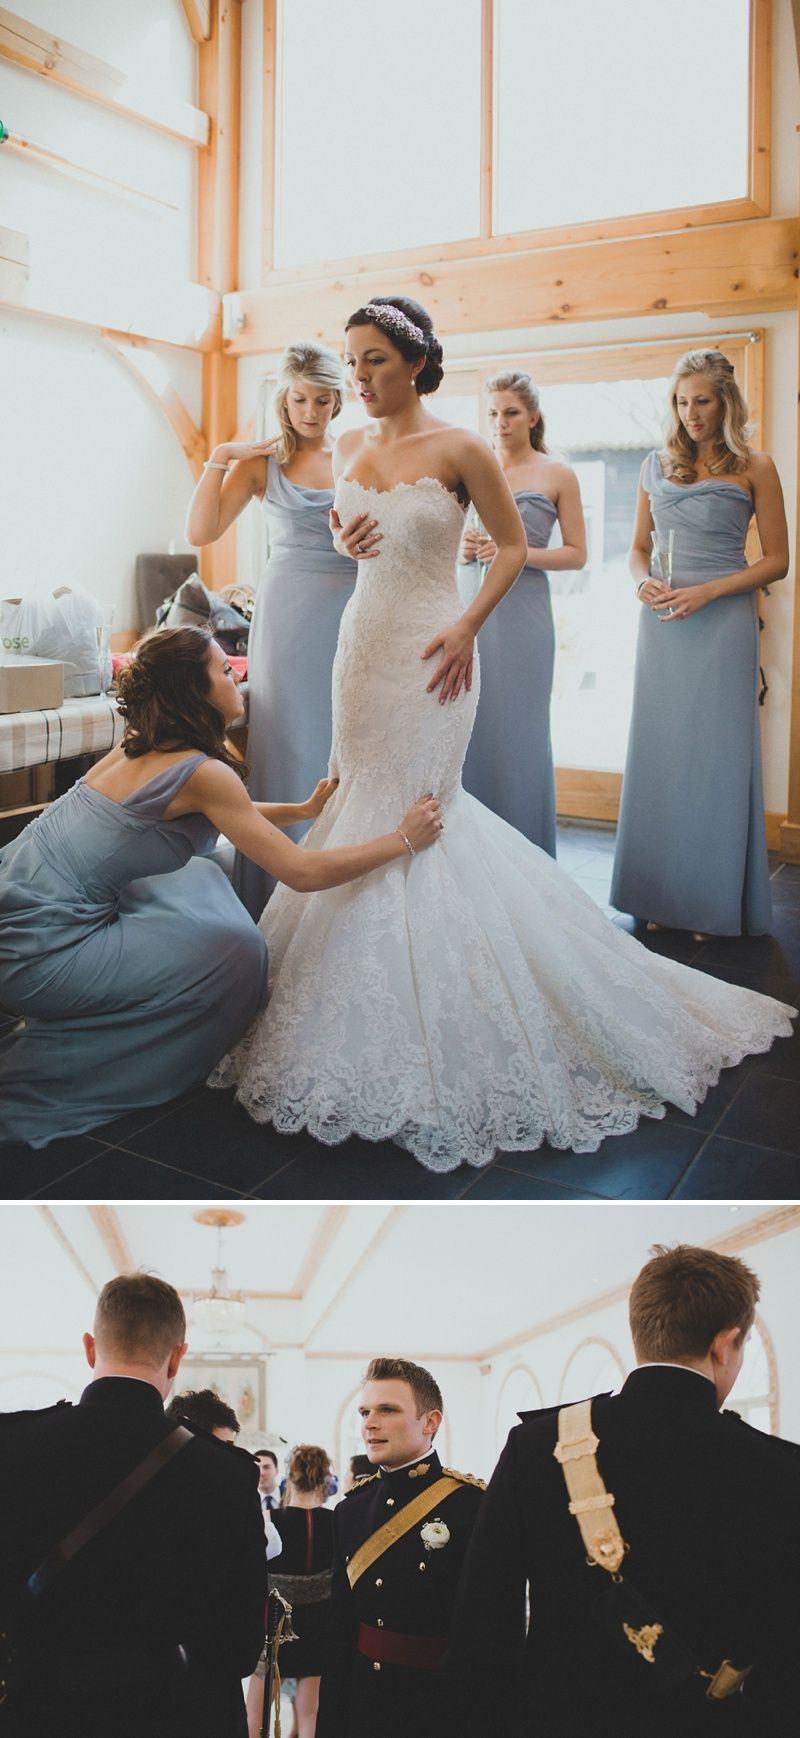 Classically beautiful wedding at northbrook park in surrey with a classically beautiful wedding at northbrook park in surrey with a dakota wedding dress by enzoani and the groom in military uniform ombrellifo Images